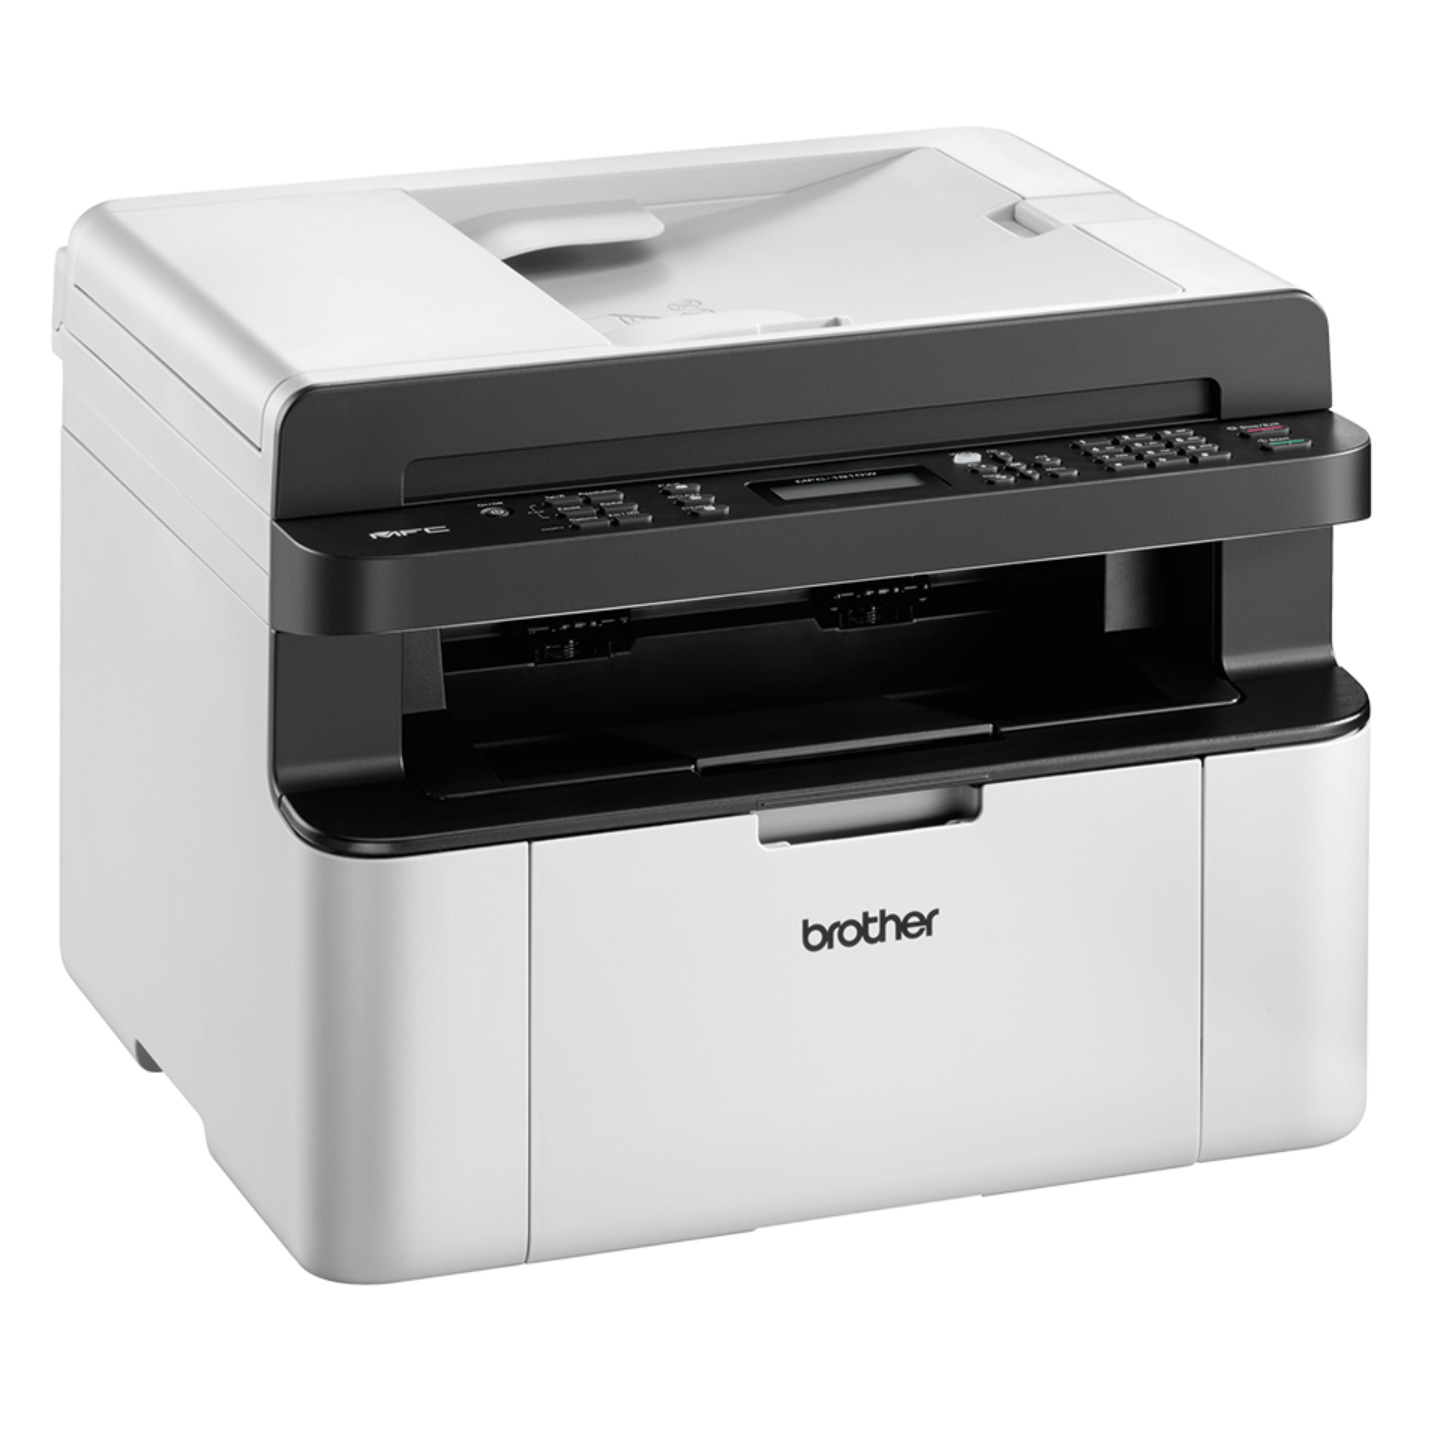 Brother MFC-1910W Compact Monochrome Laser Multi-Function Centre (Wireless / ADF / Print / Scan / Copy / Fax)